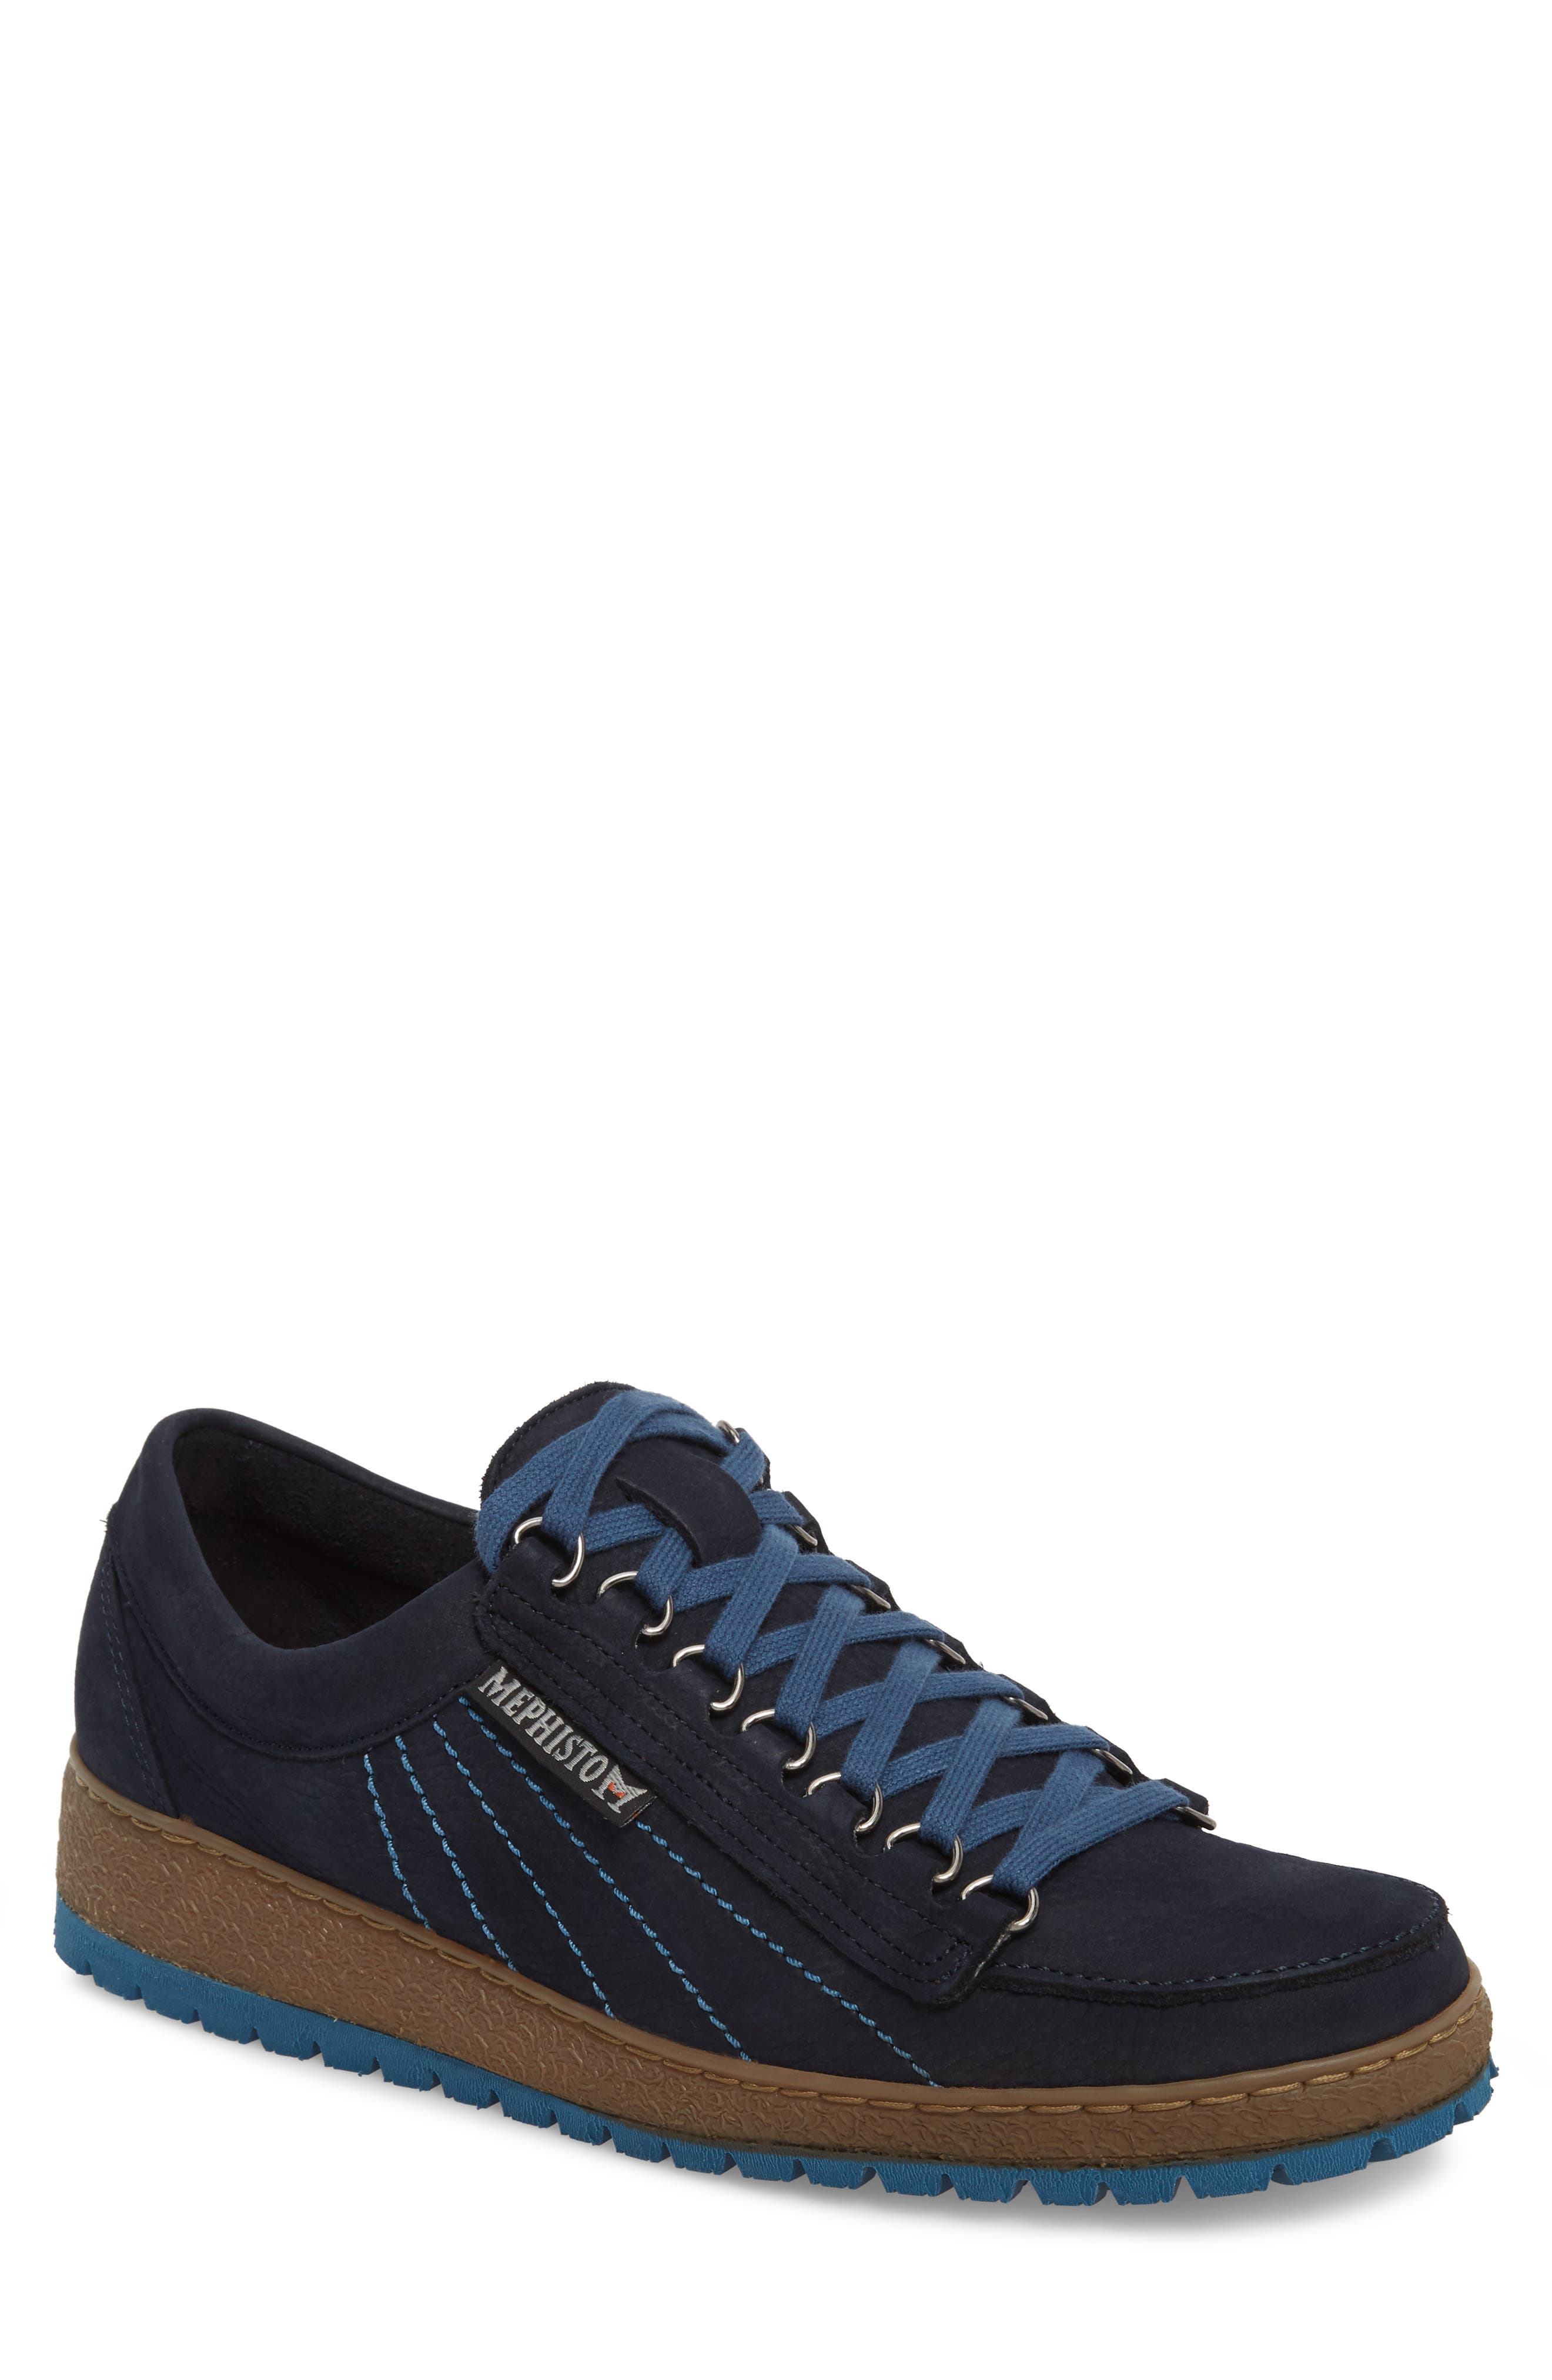 Rainbow Sneaker,                             Main thumbnail 1, color,                             NAVY BLUE SUEDE